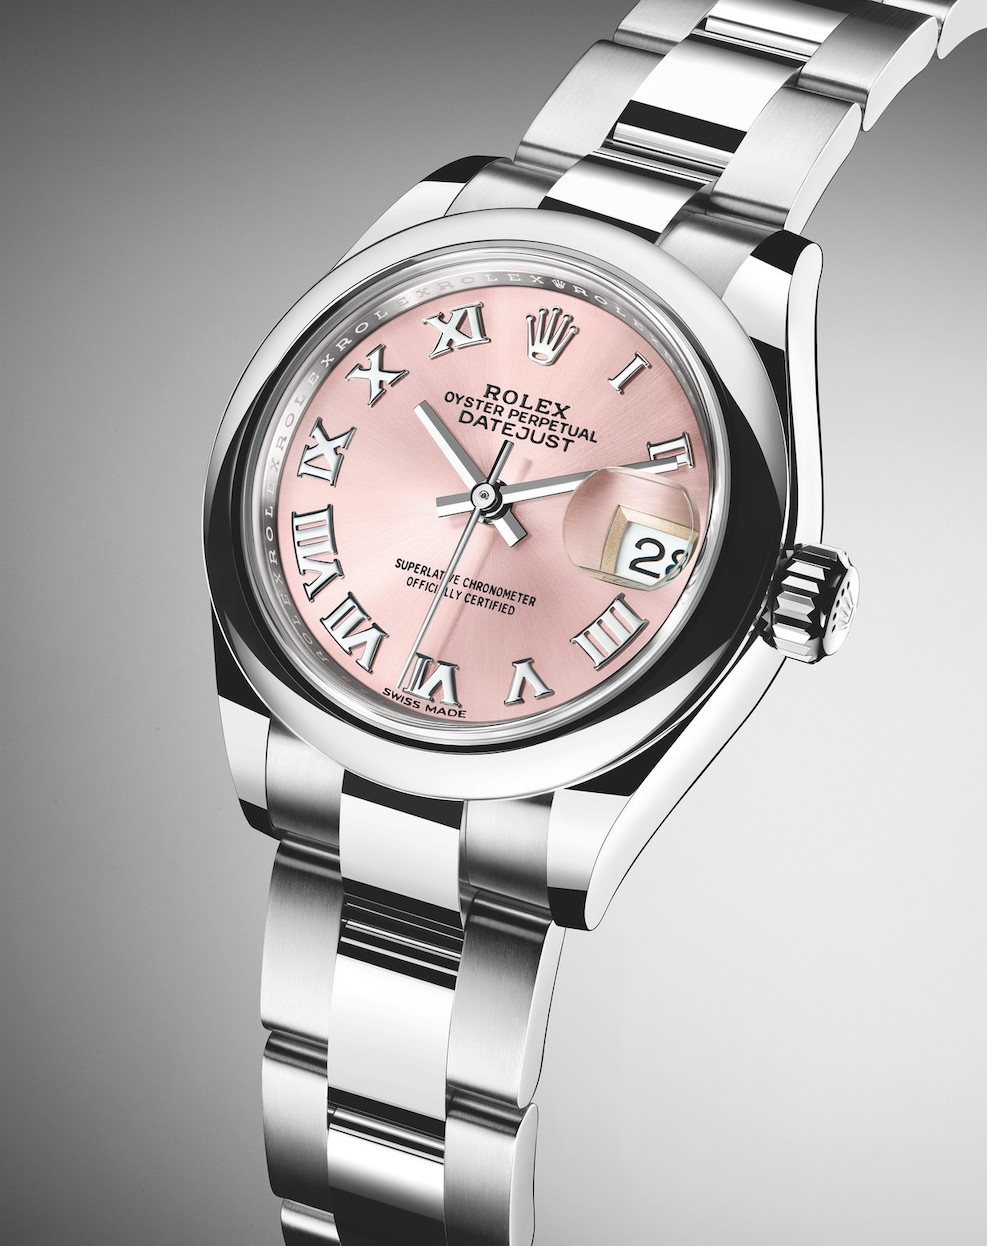 Rolex Oyster Perpetual Datejust 28mm.